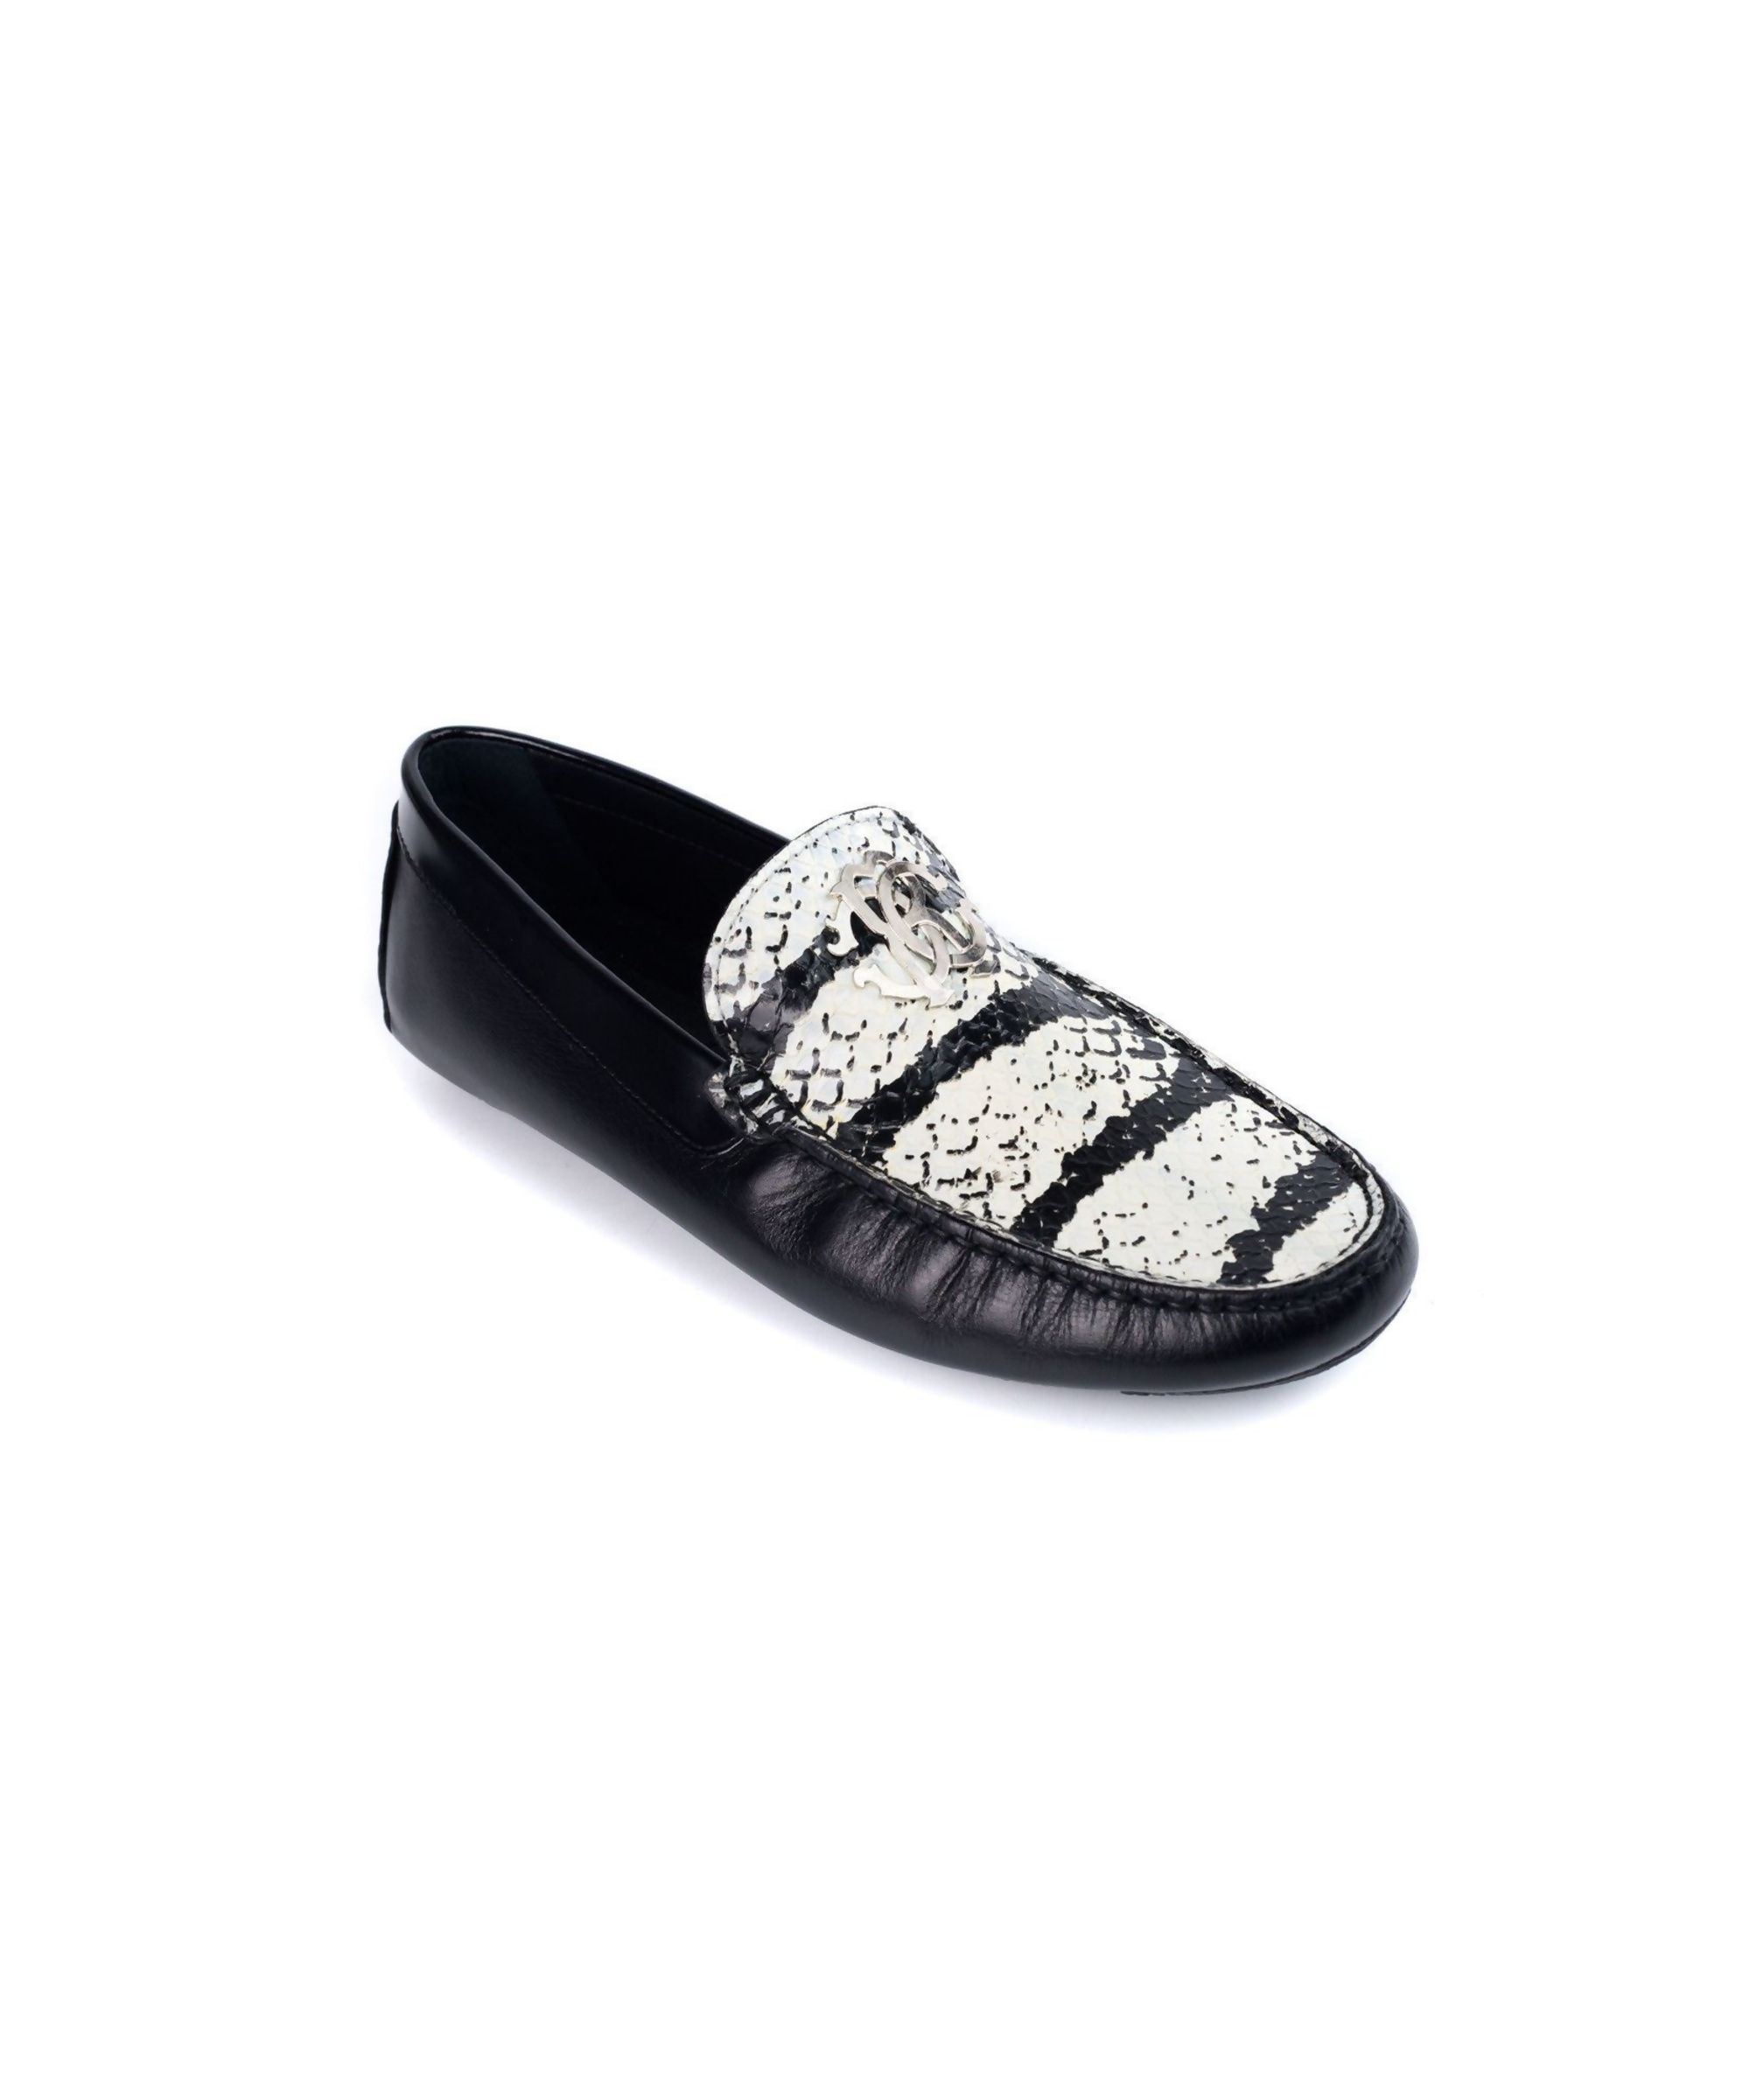 Womens black leather loafers